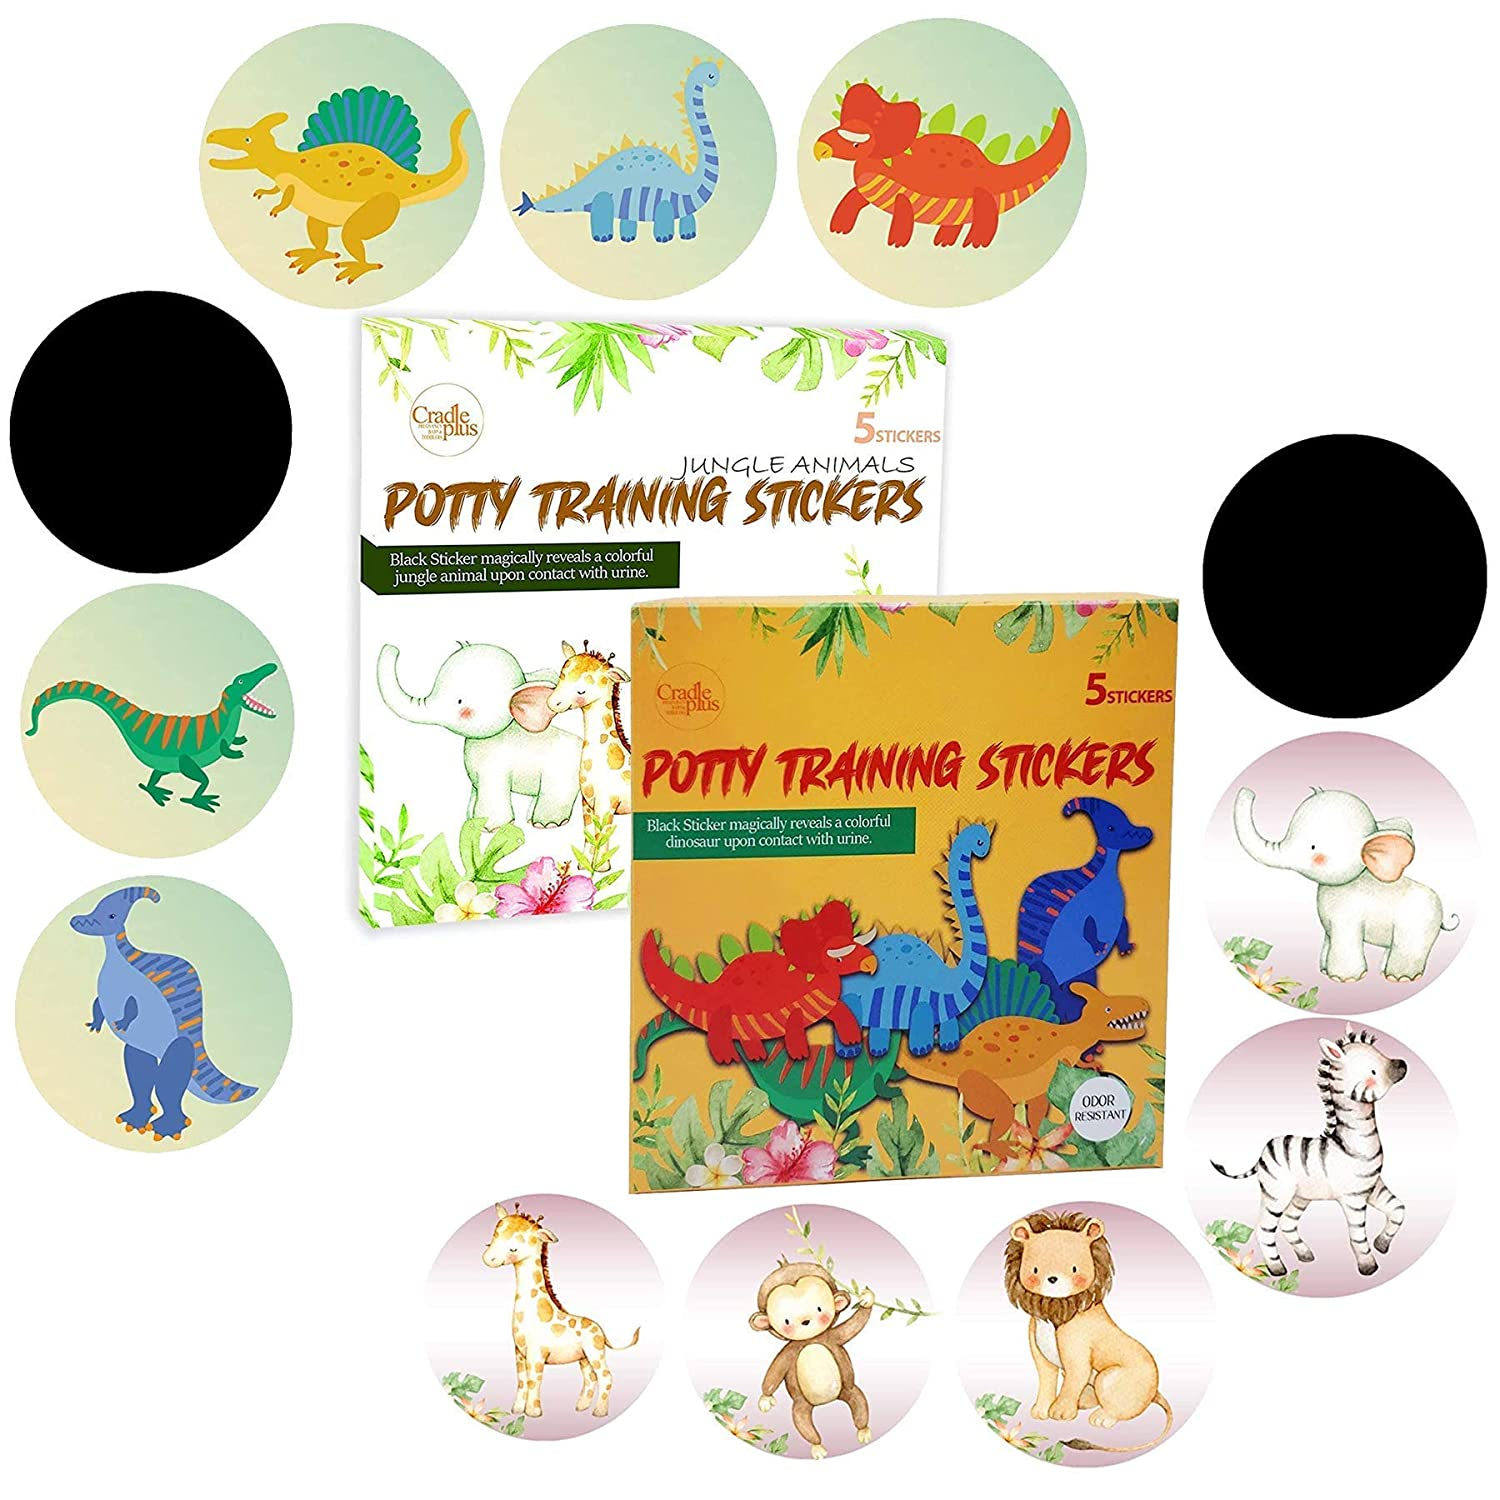 Potty Training Seat Magic Sticker | Potty Training Toilet Color Changing Sticker | 10 Pack Magical Stickers | Use with or Without Potty Training Charts I Jungle Animal and Dinosaur Stickers